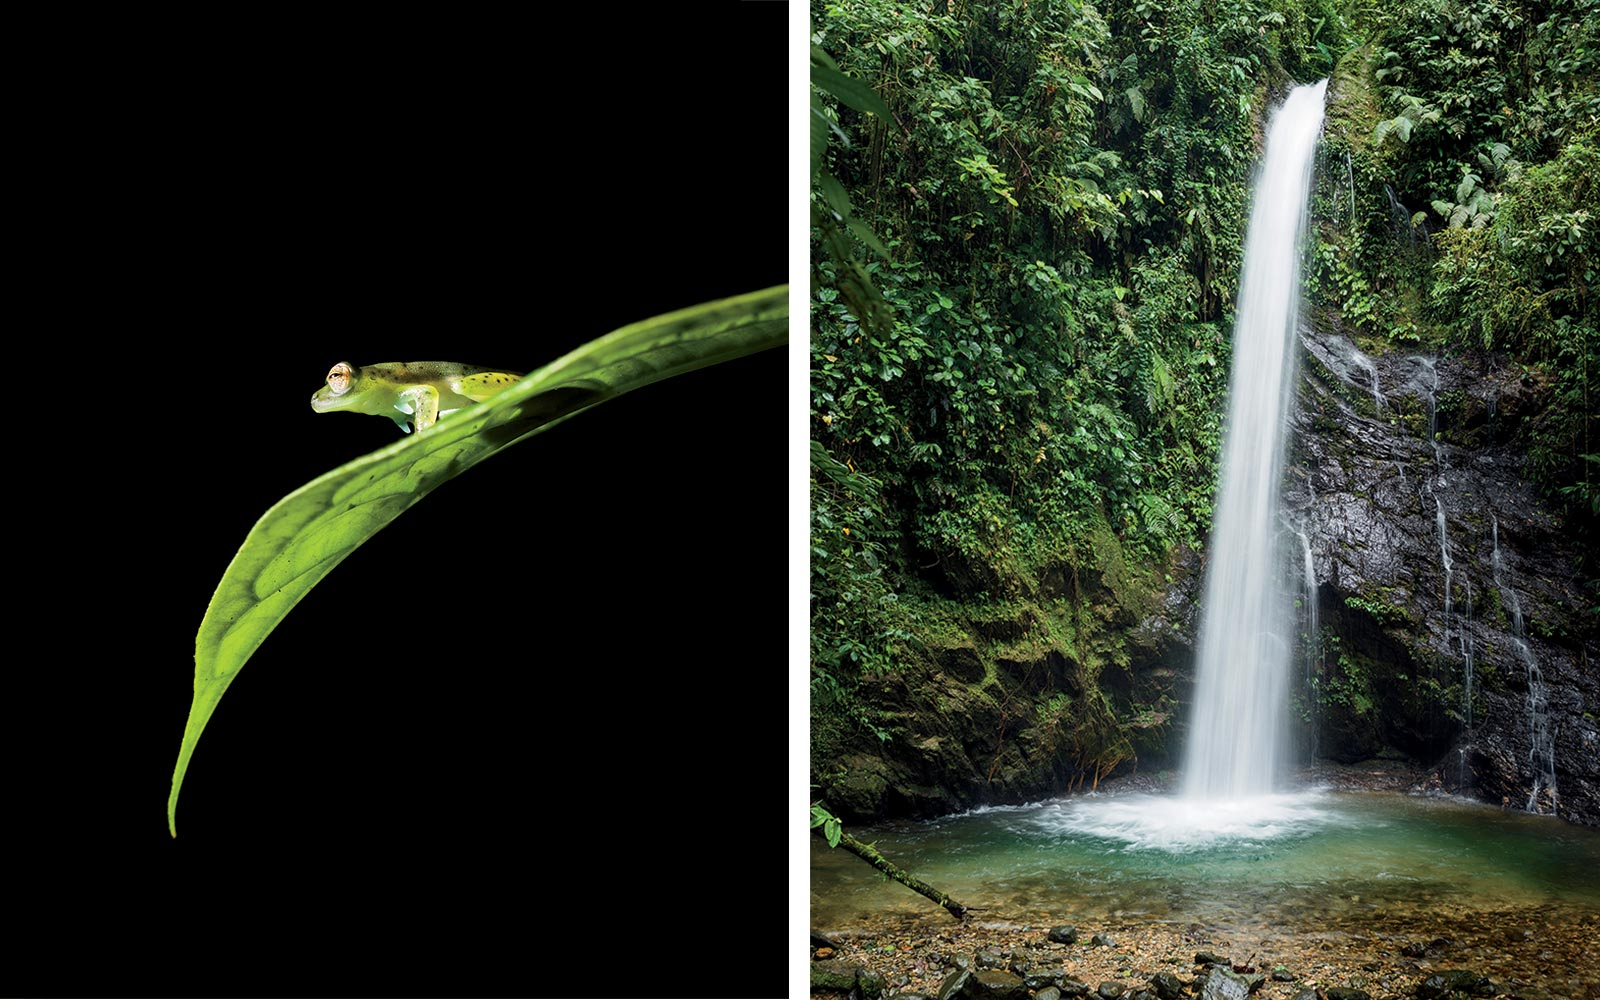 Emerald glass frog in Ecuador, and the  Healing Waterfall